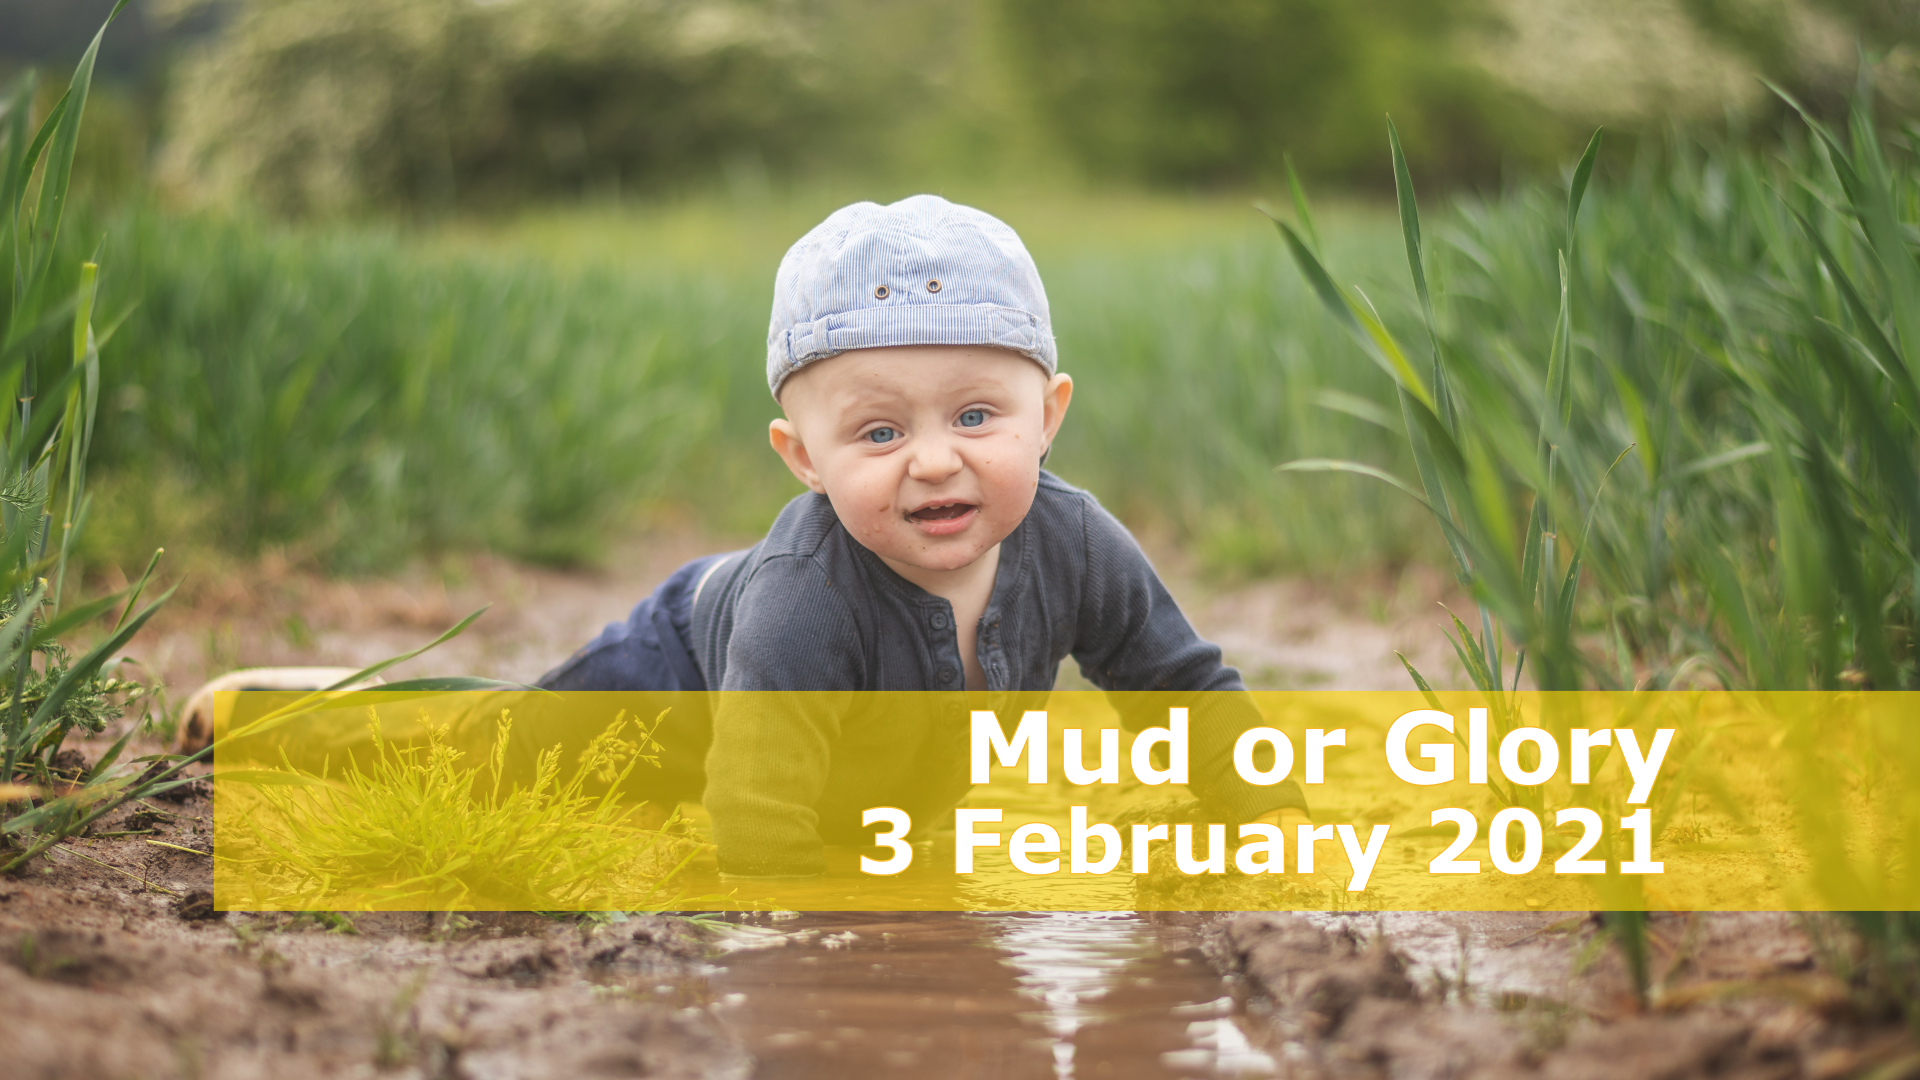 <span class='p-name'>Mud or Glory — 3 February 2021 Devotional</span>